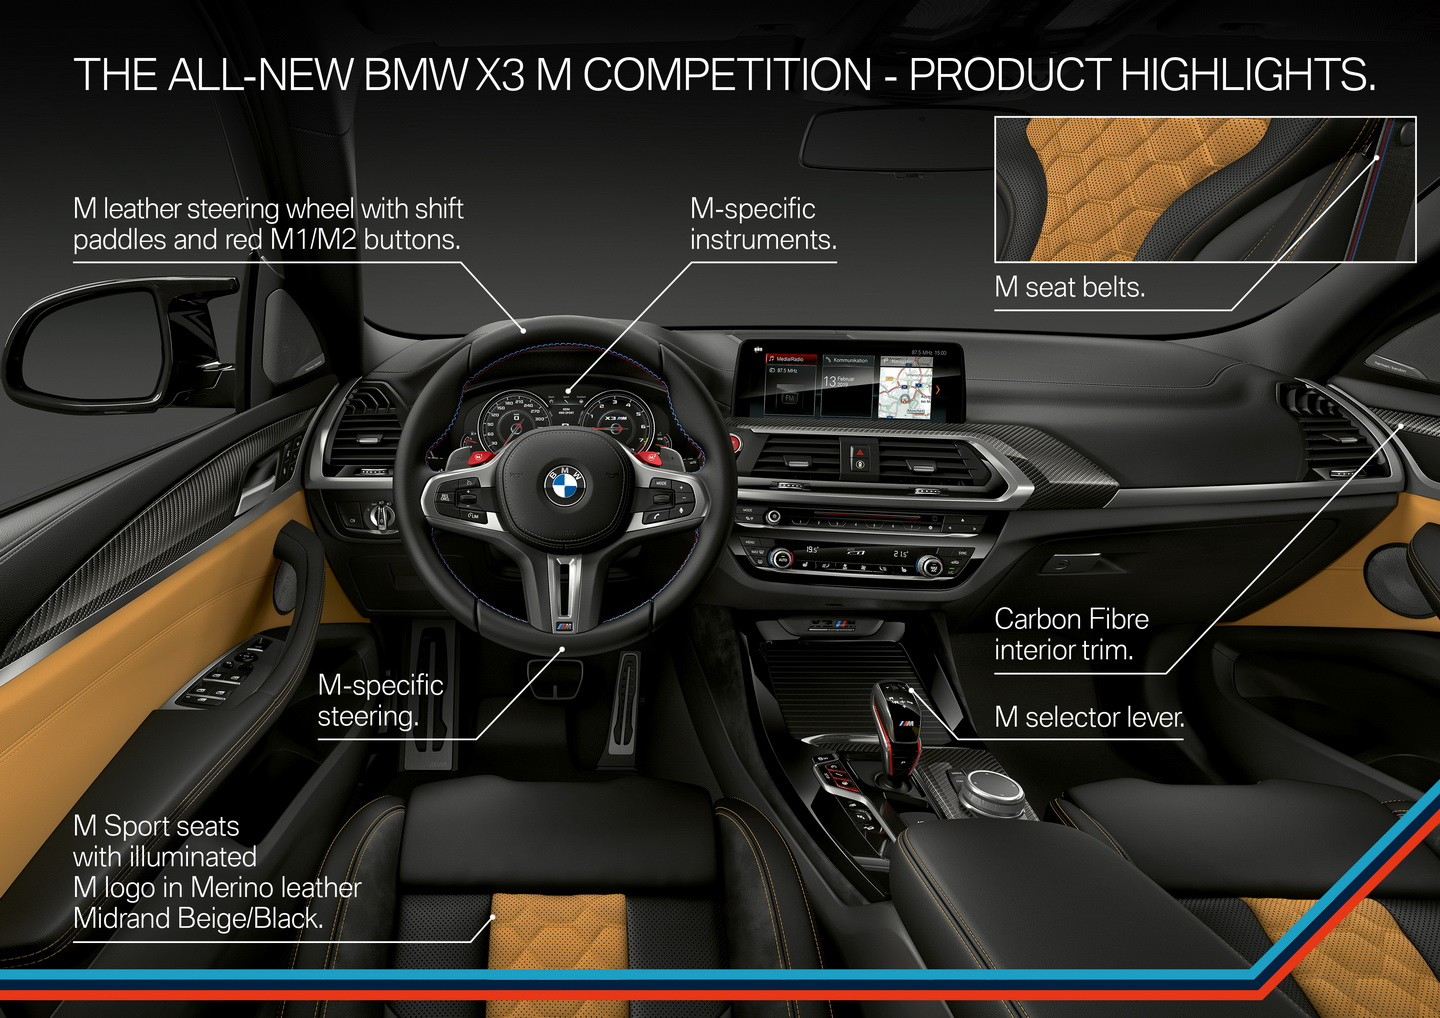 New 2019 BMW X3 X4 M Competition 175